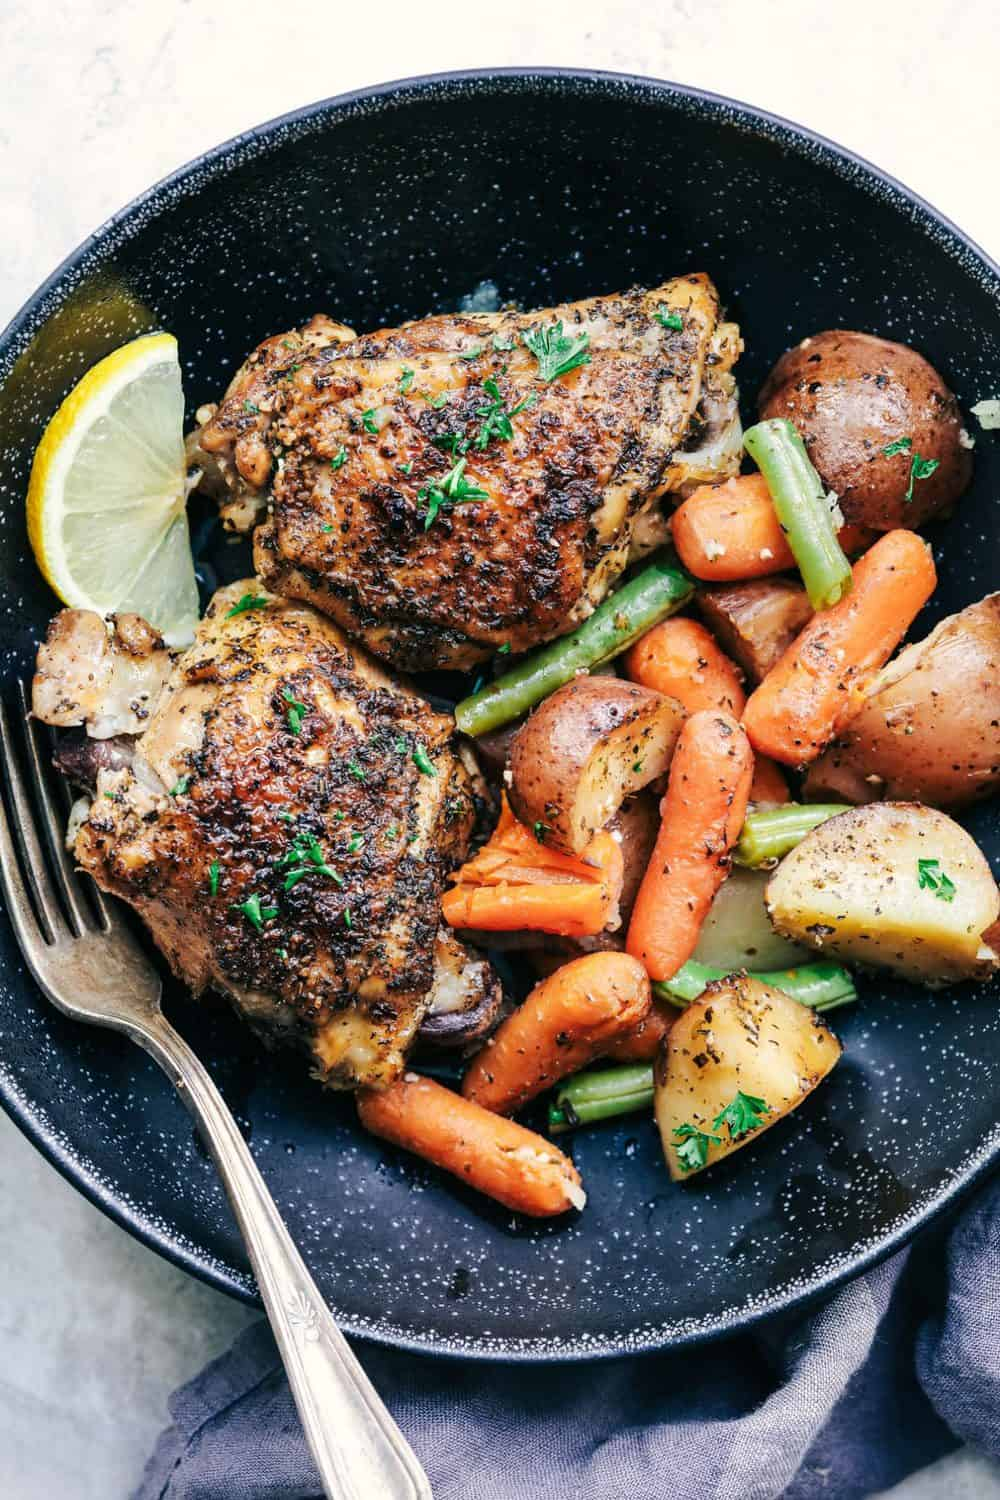 Slow Cooker Lemon Garlic Chicken Thighs and Veggies on a black plate.